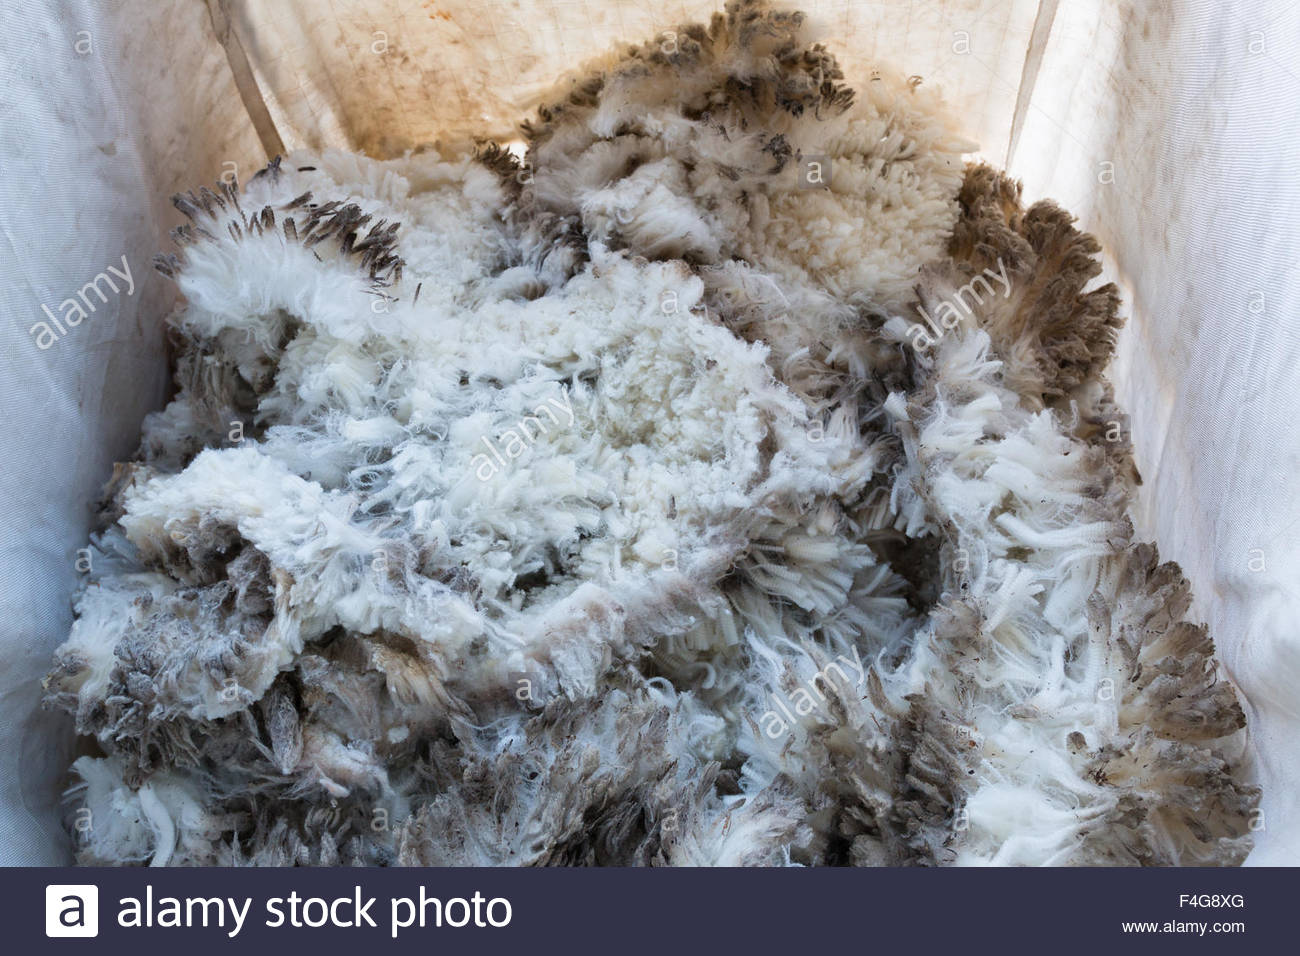 Pile of unprocessed sheep fleece in a collecting bag - Stock Image